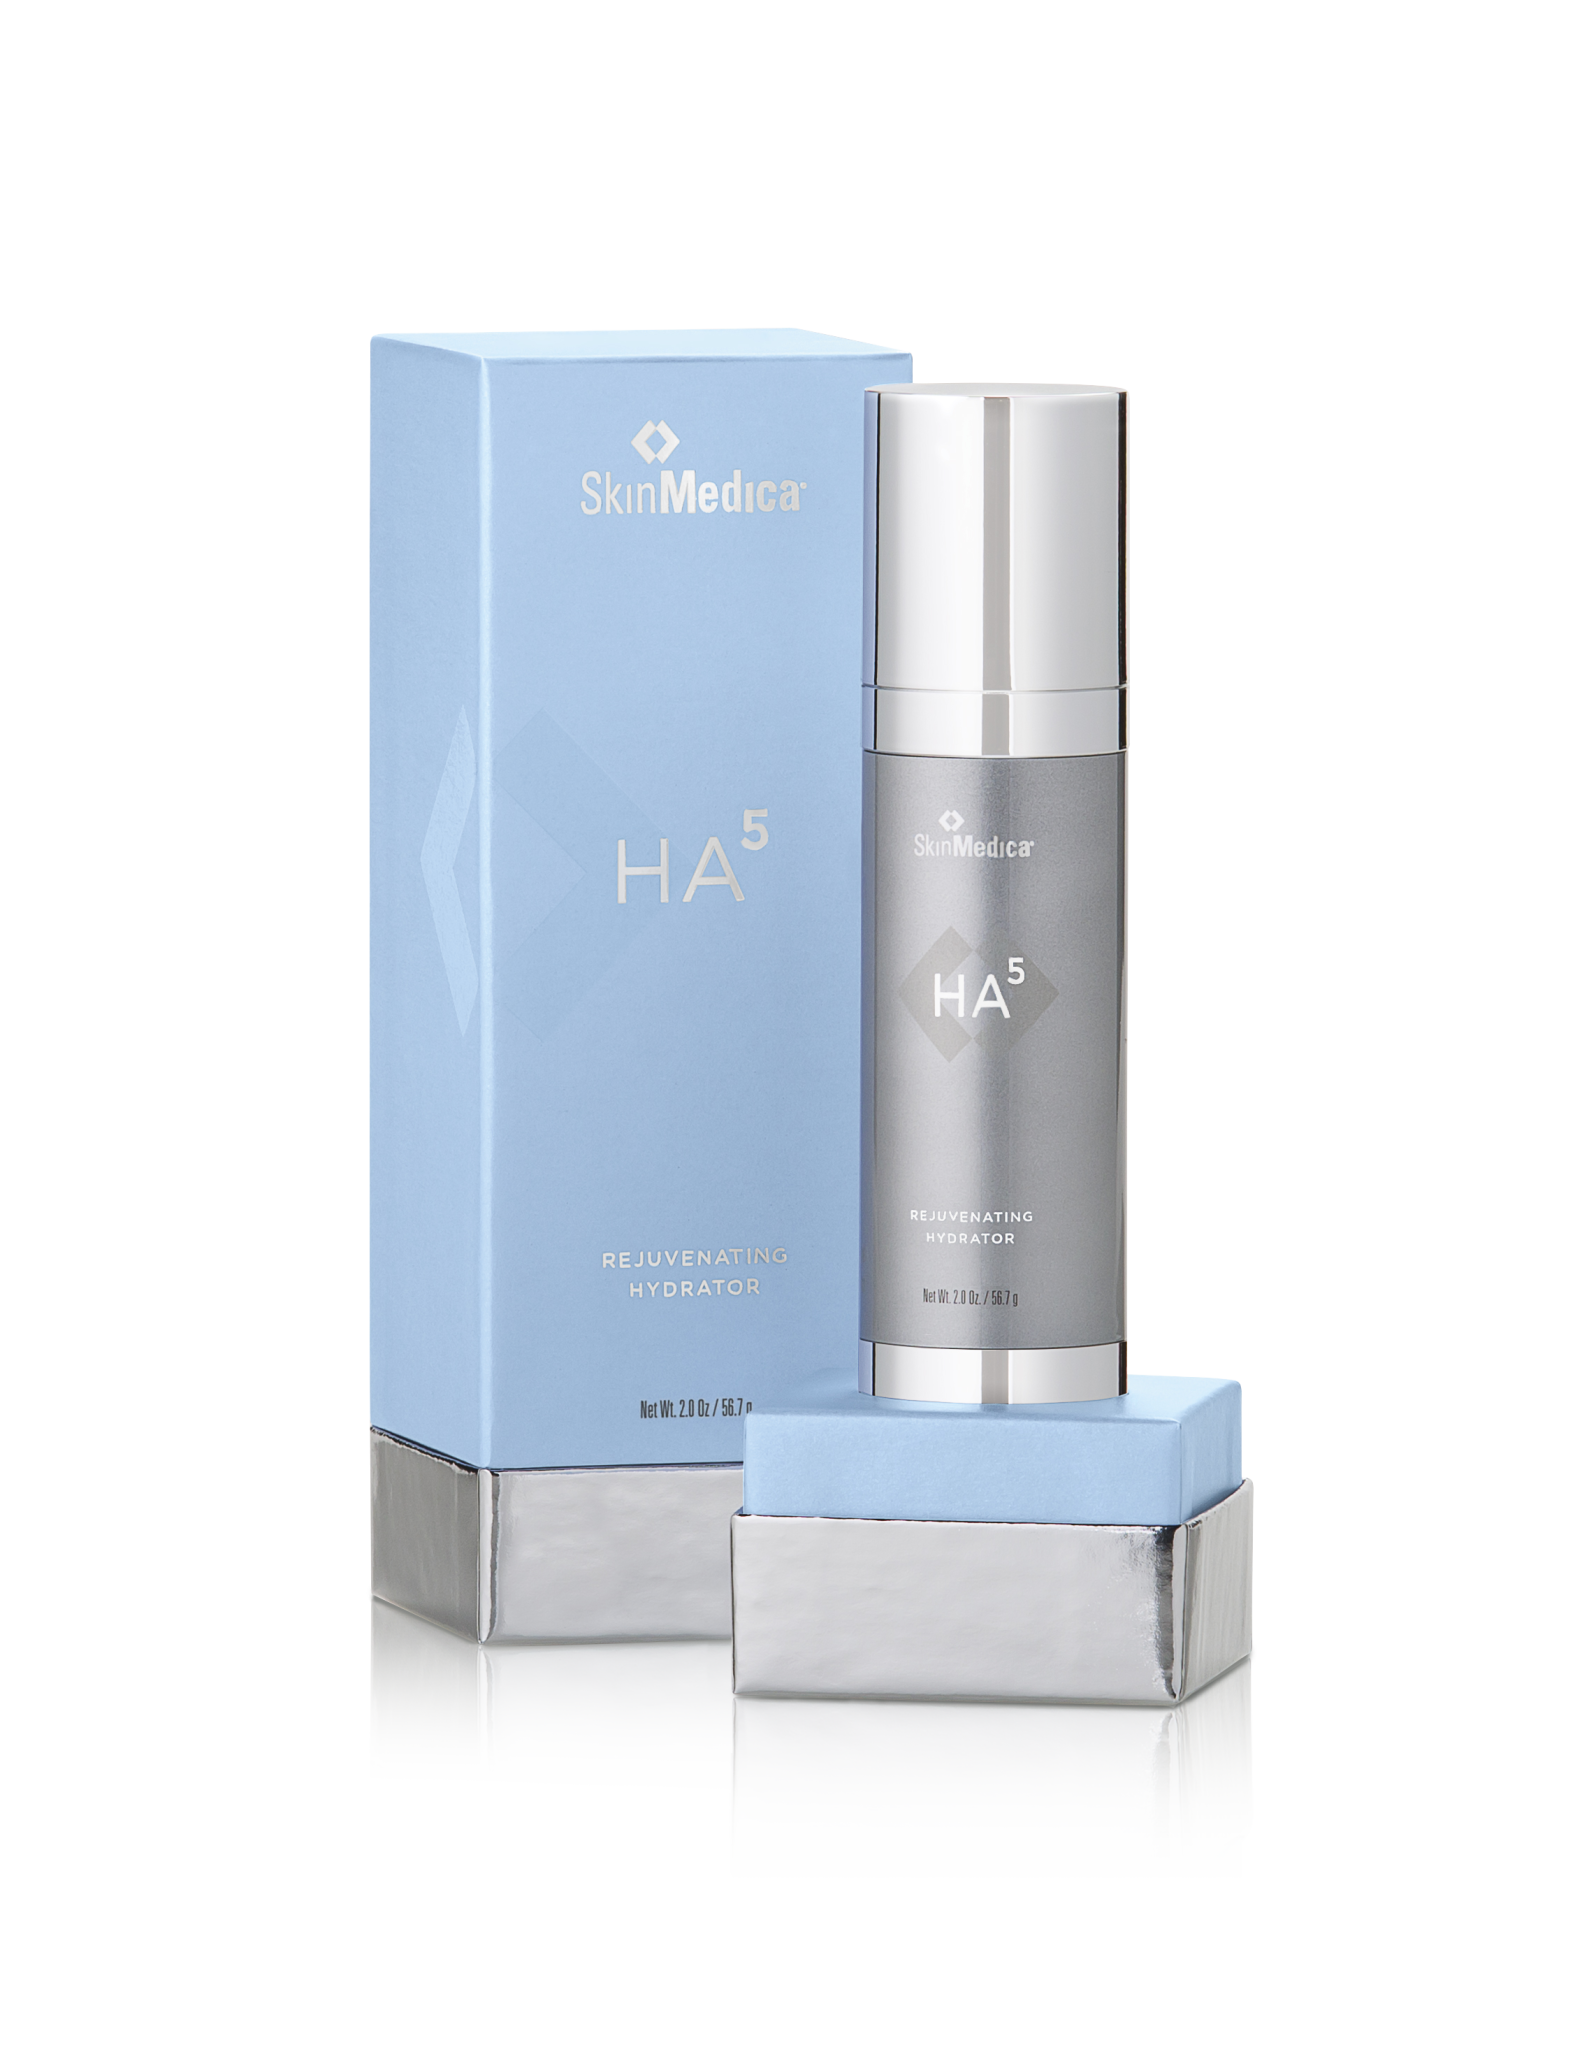 Pick Of The Month Skinmedica S Ha5 Southeastern Dermatology